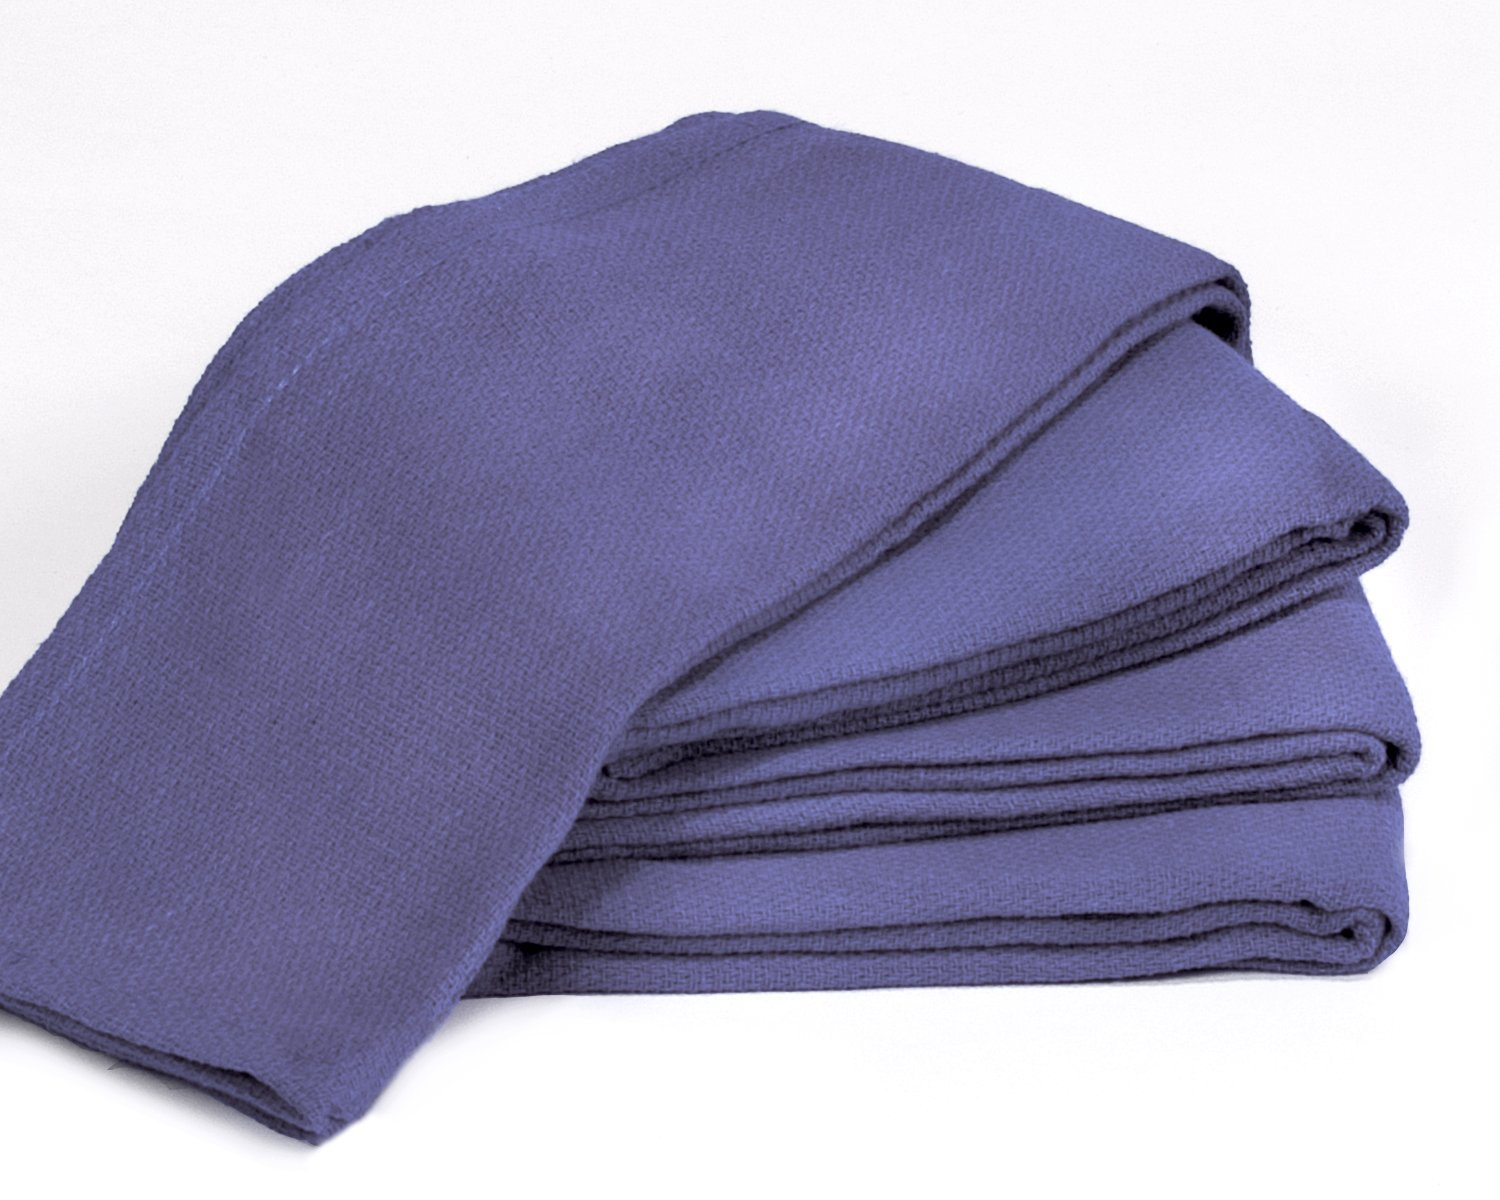 Towels by Doctor Joe Blue 16'' x 25'' New Surgical Huck Towel, Pack of 12 by Towels by Doctor Joe